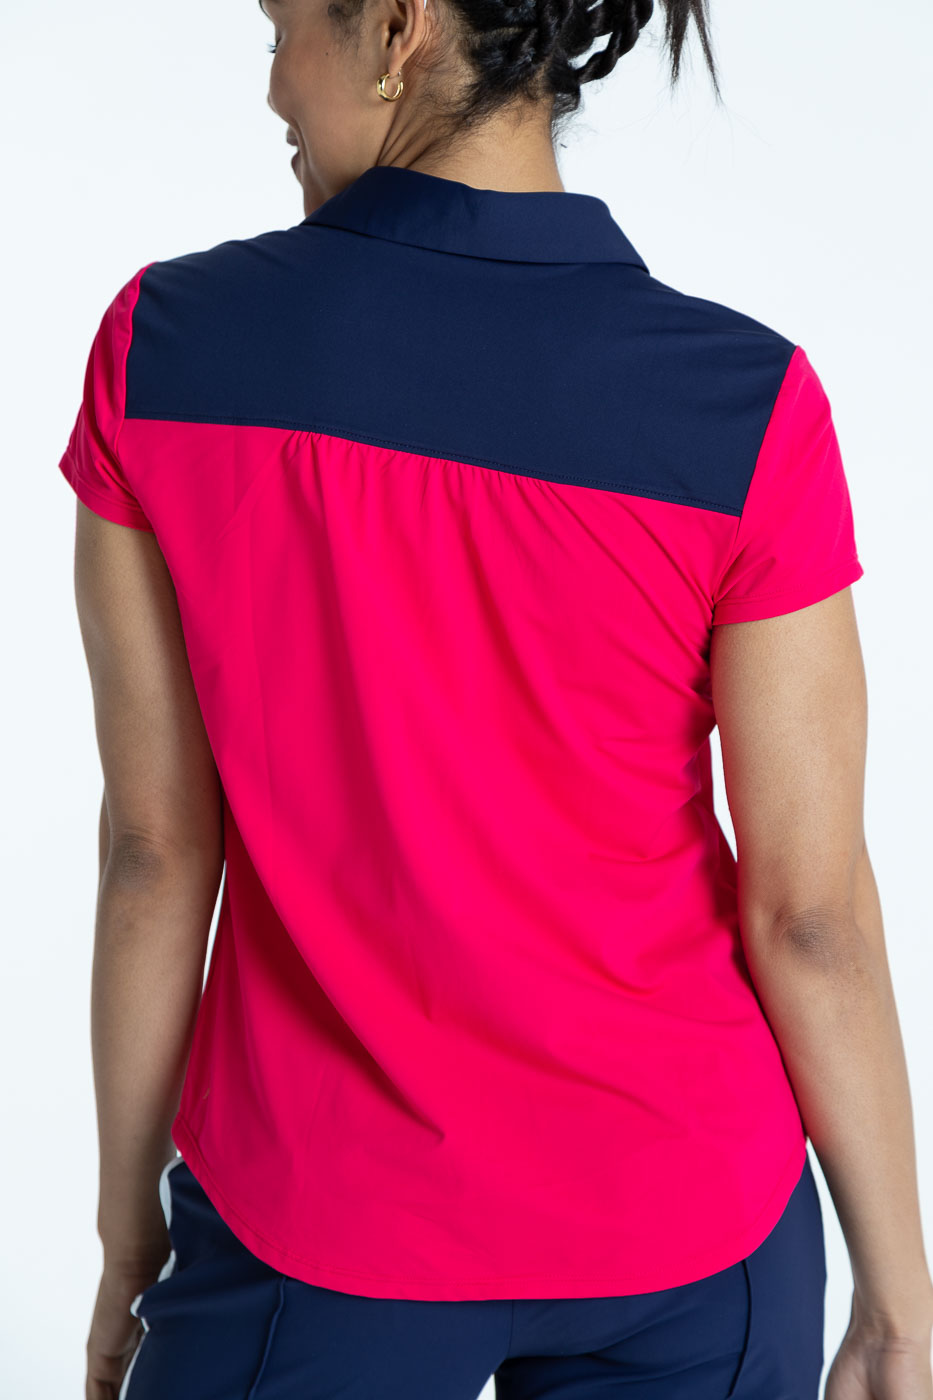 Back view of golfer in a raspberry red Shoulder Opener Shortsleeve golf shirt